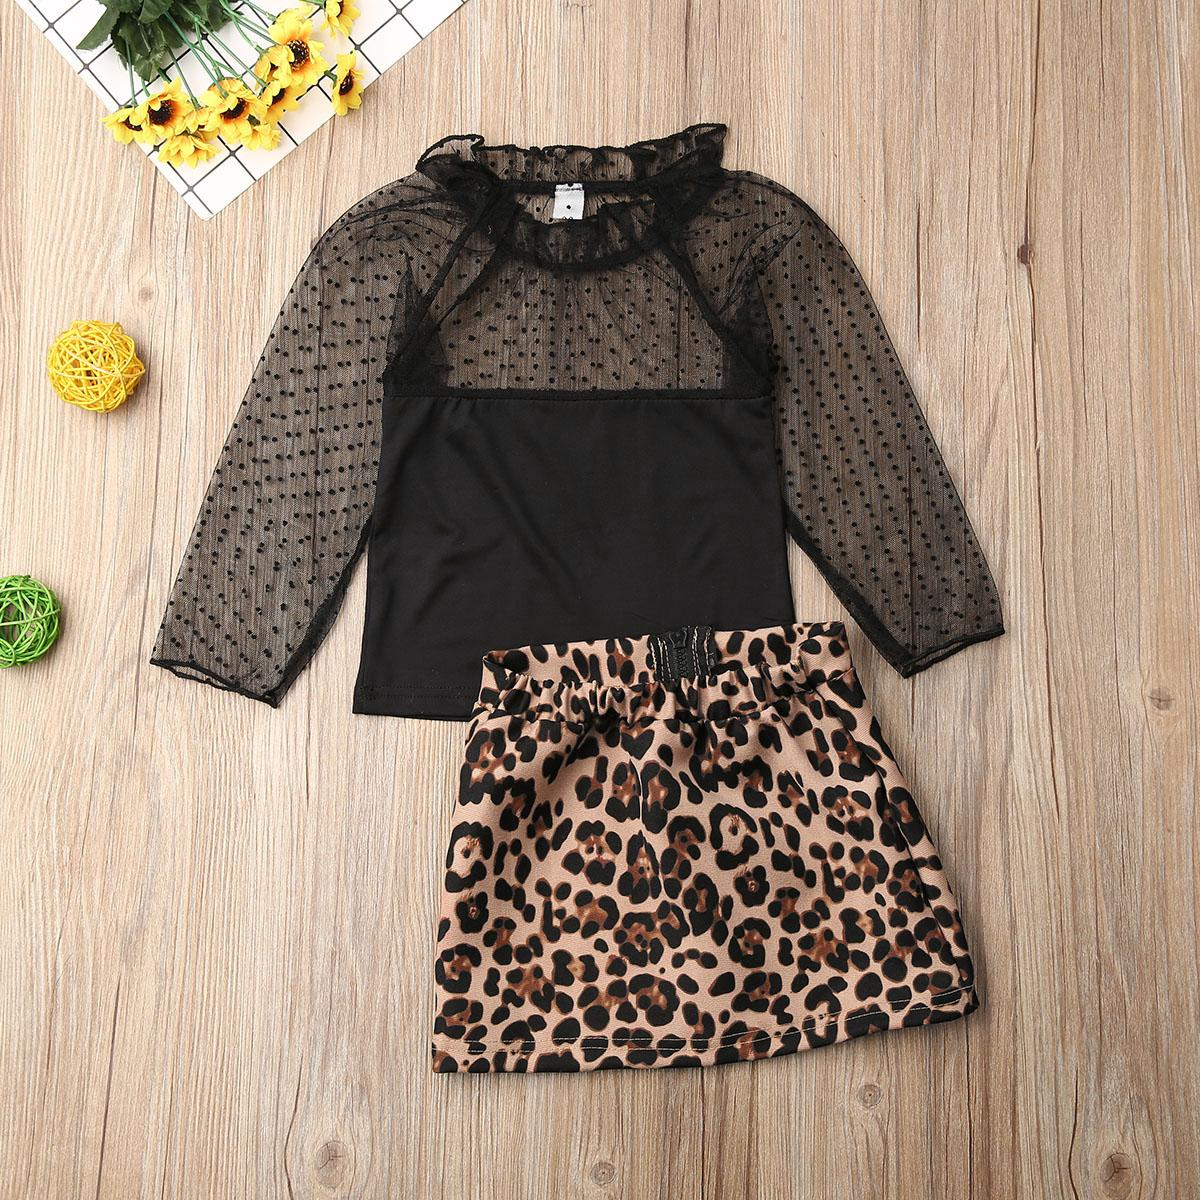 1-6 Years Toddler Kids Baby Girls Clothes Set Leopard Printed Ruffles Mesh Lace Tops T Shirt+Skirt Tracksuit Outfits